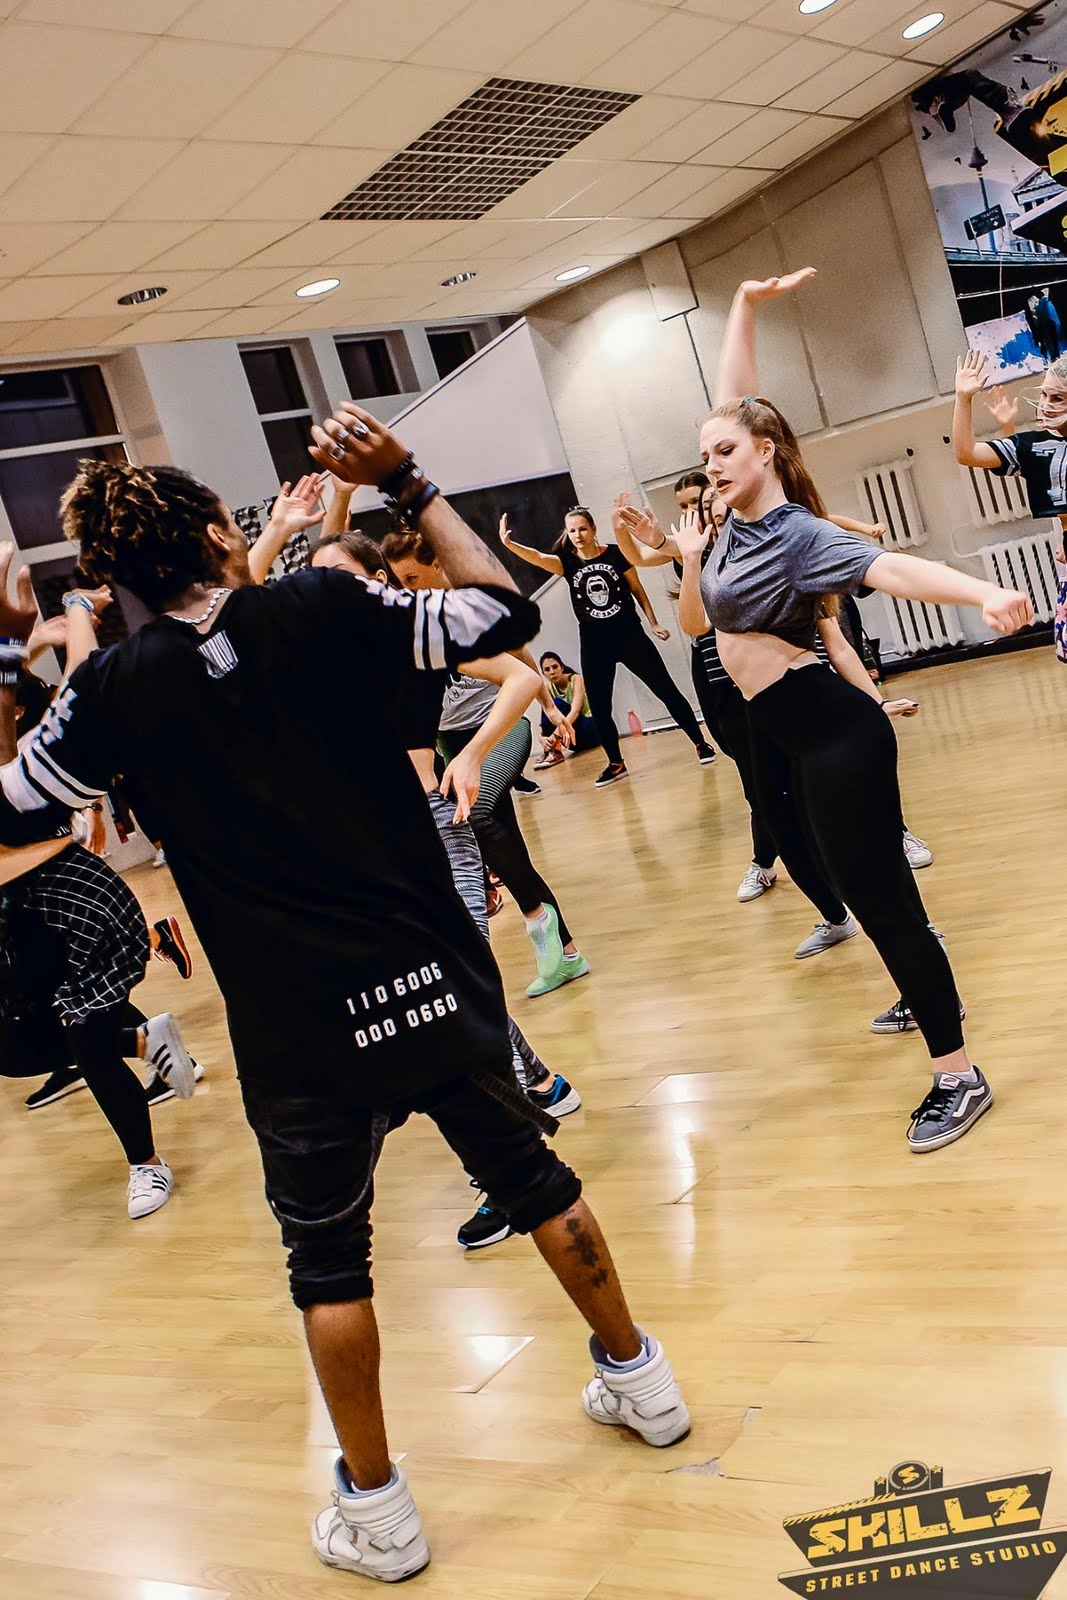 Dancehall workshop with Jiggy (France) - 44.jpg